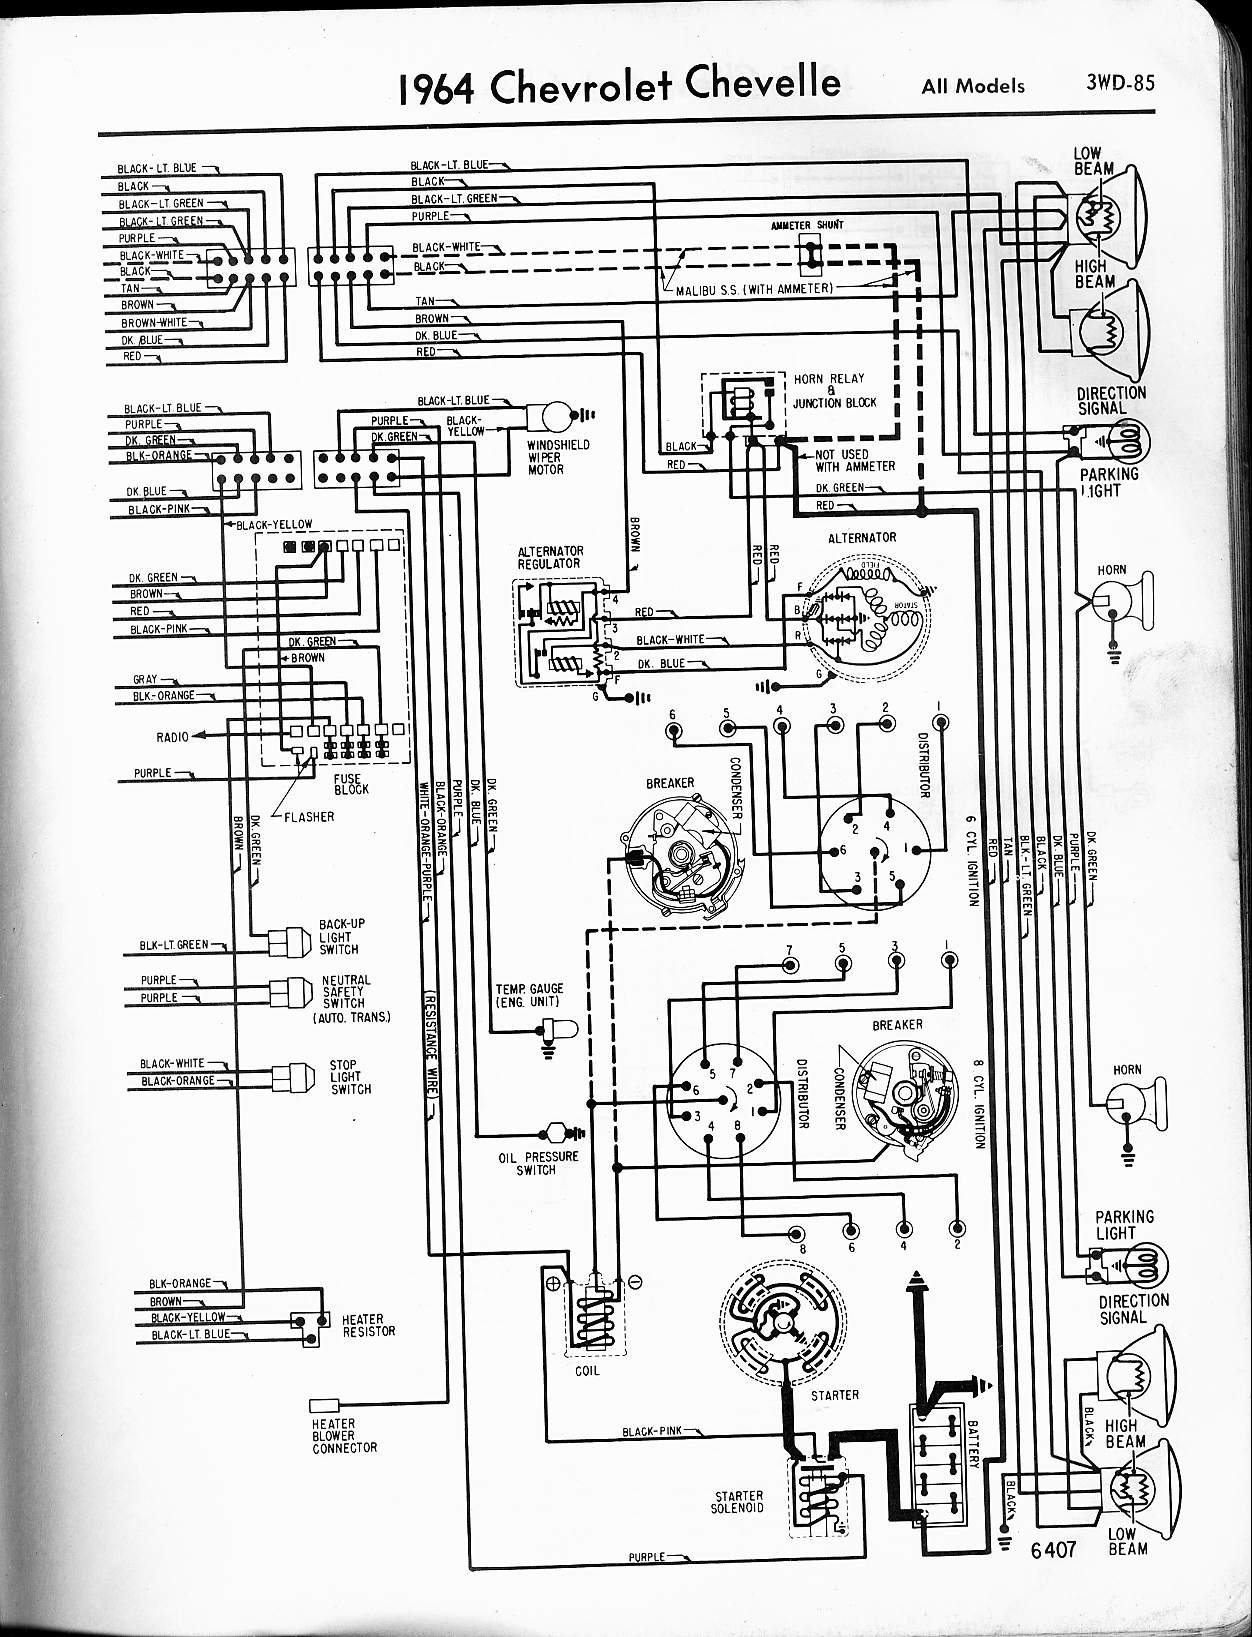 1970 Chevelle Wiring Diagram In Addition For And Gm Radio Diagrams Rh 22 Shareplm De Heater